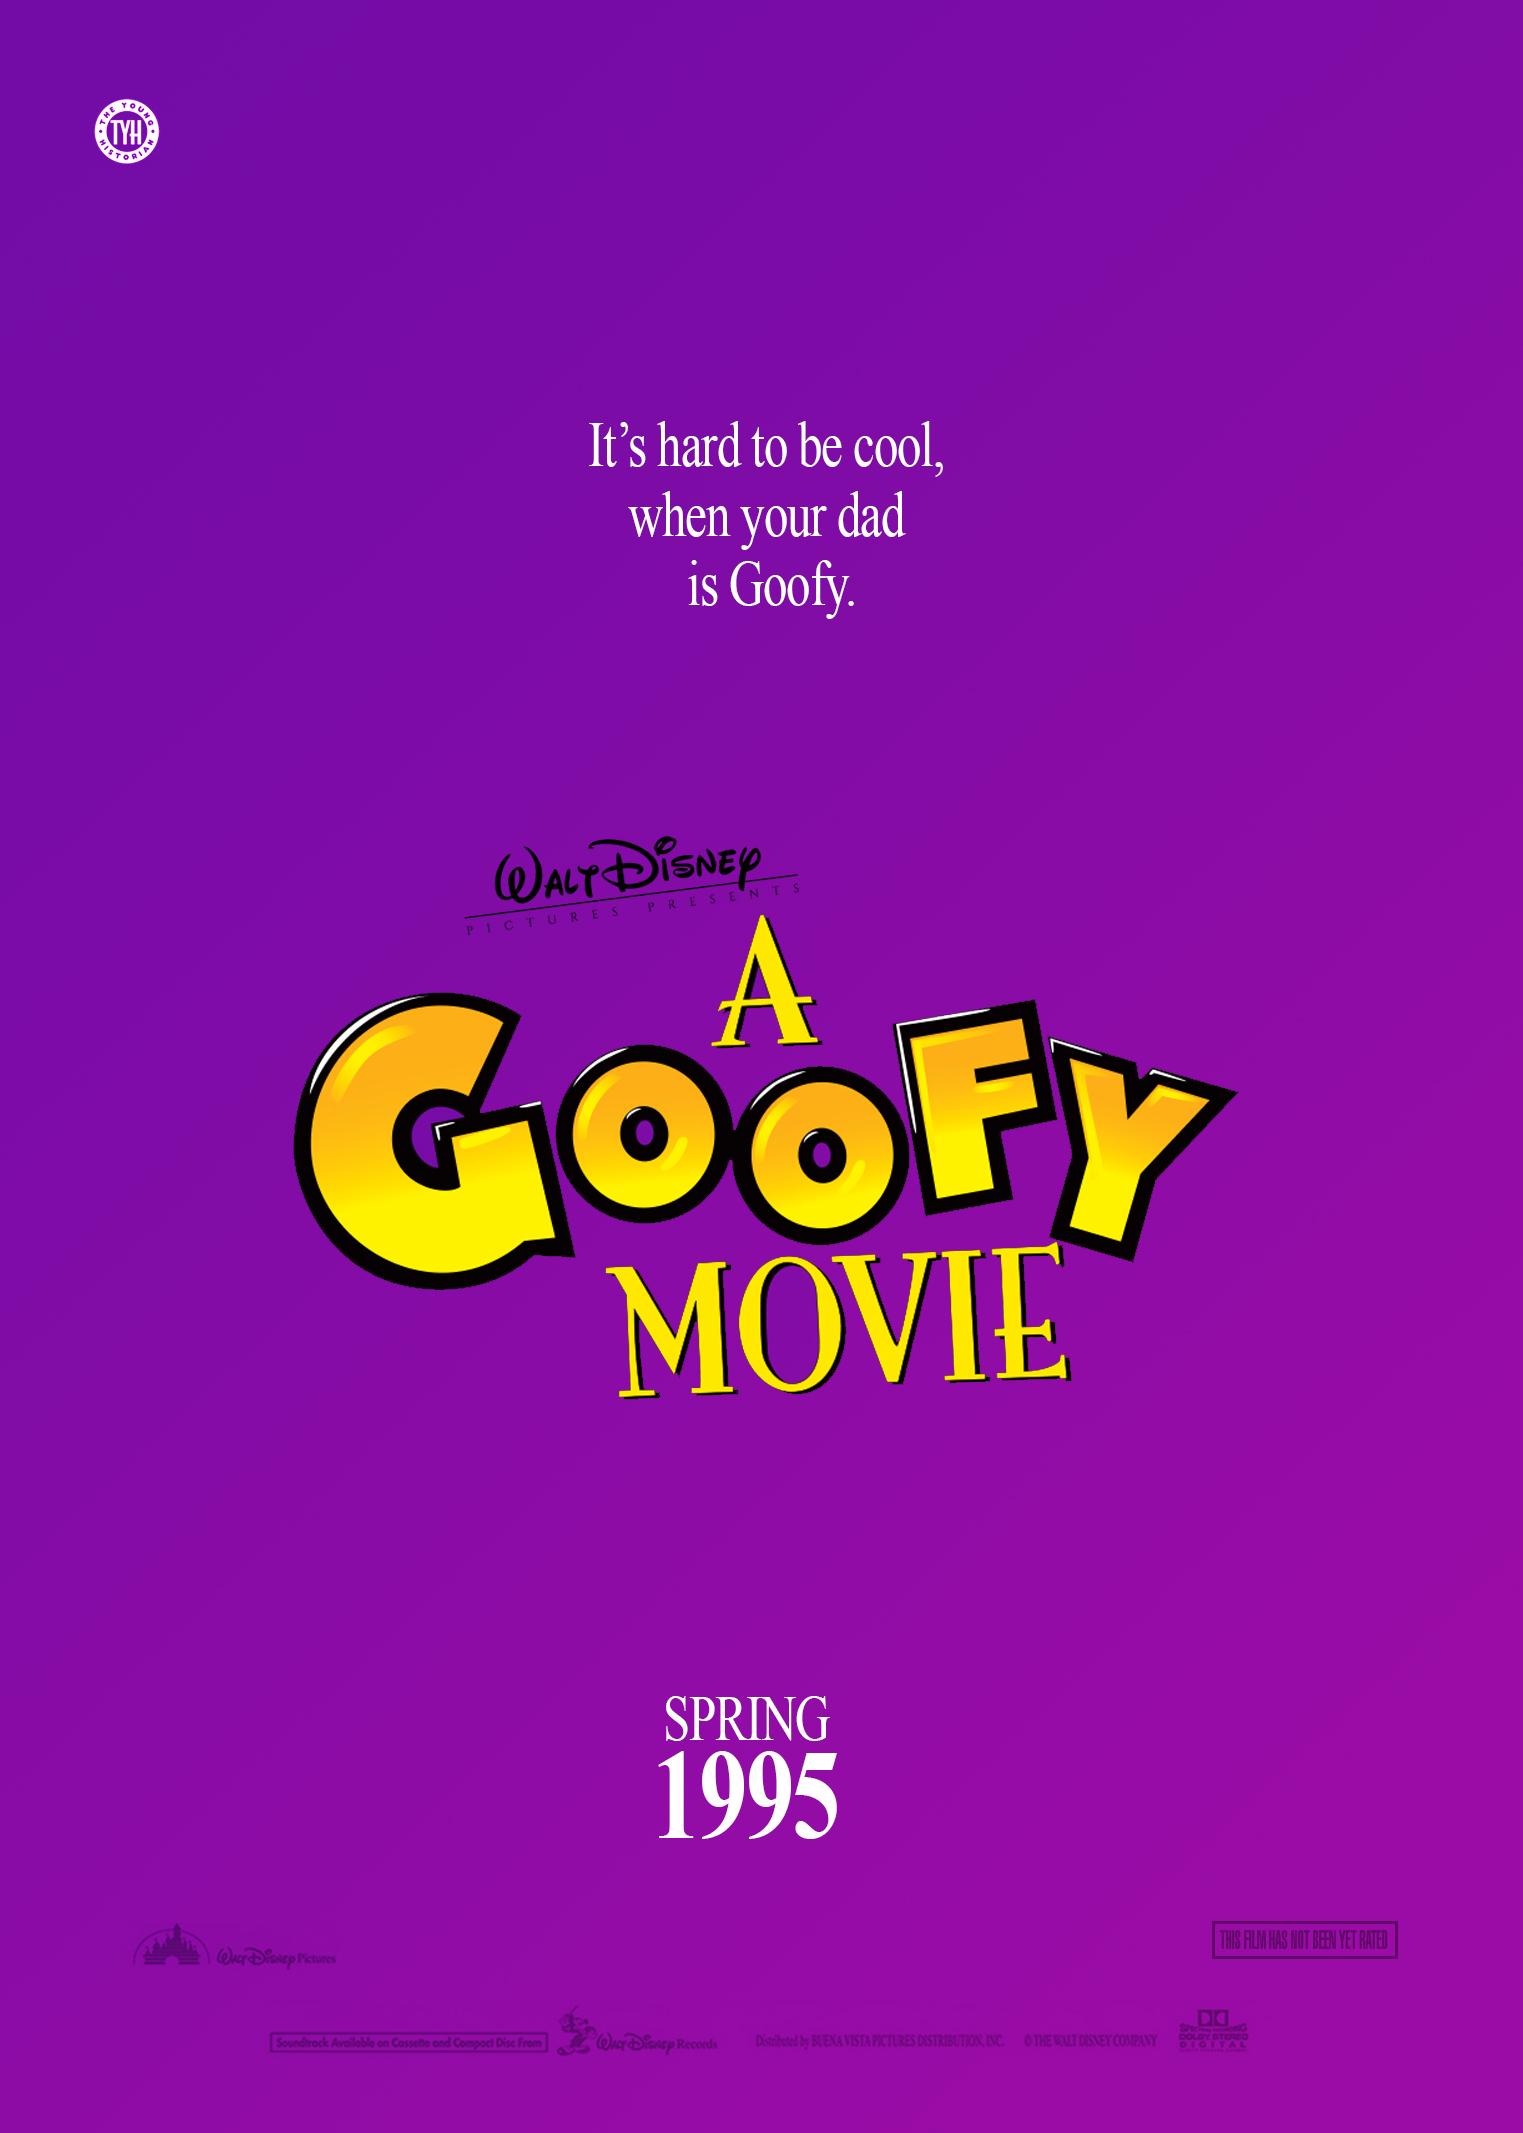 A Goofy Movie 1995 Teaser By Theyounghistorian On Deviantart